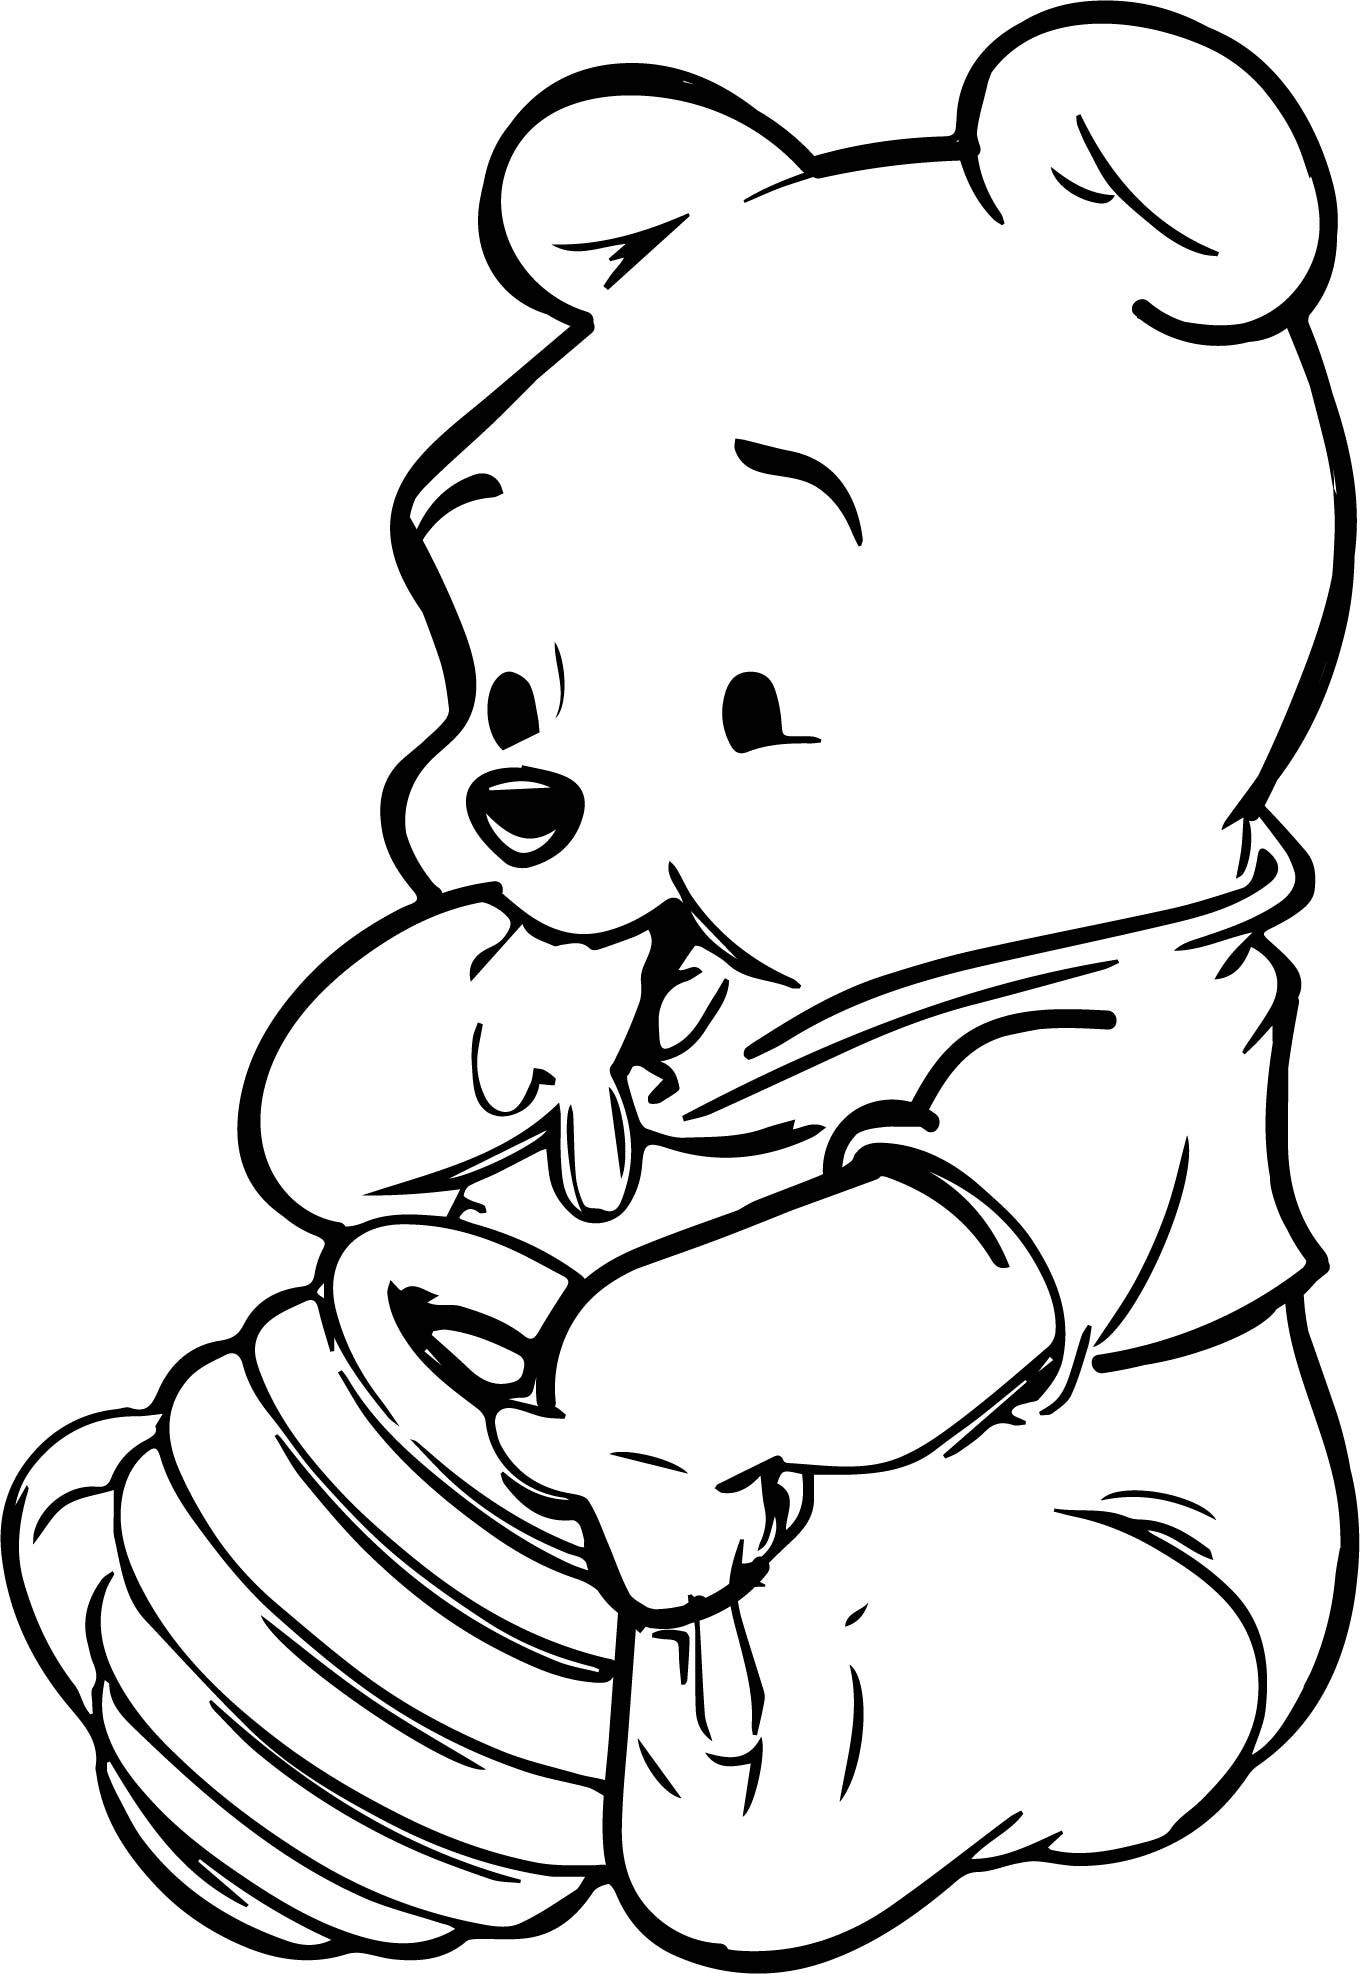 Pooh Coloring Pages Winnie The Pooh Drawing Boy Cartoon Drawing